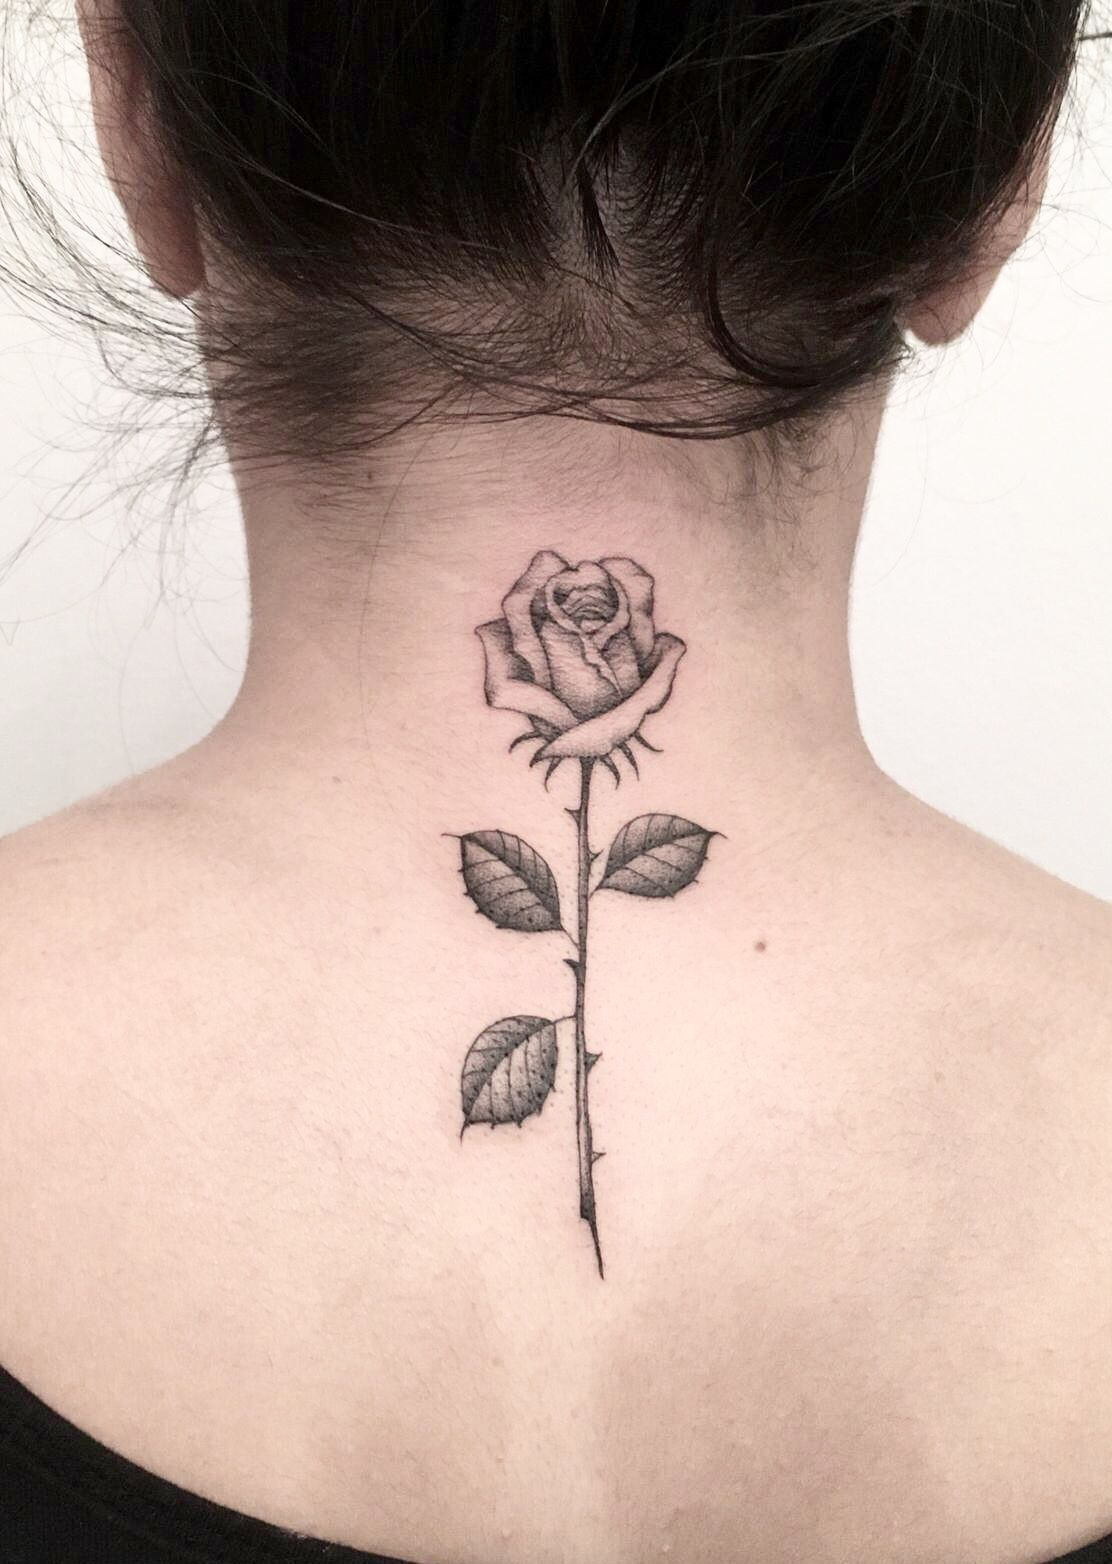 Rose Neck Tattoo Rose Neck Tattoo Neck Tattoos Women Back Of Neck Tattoo